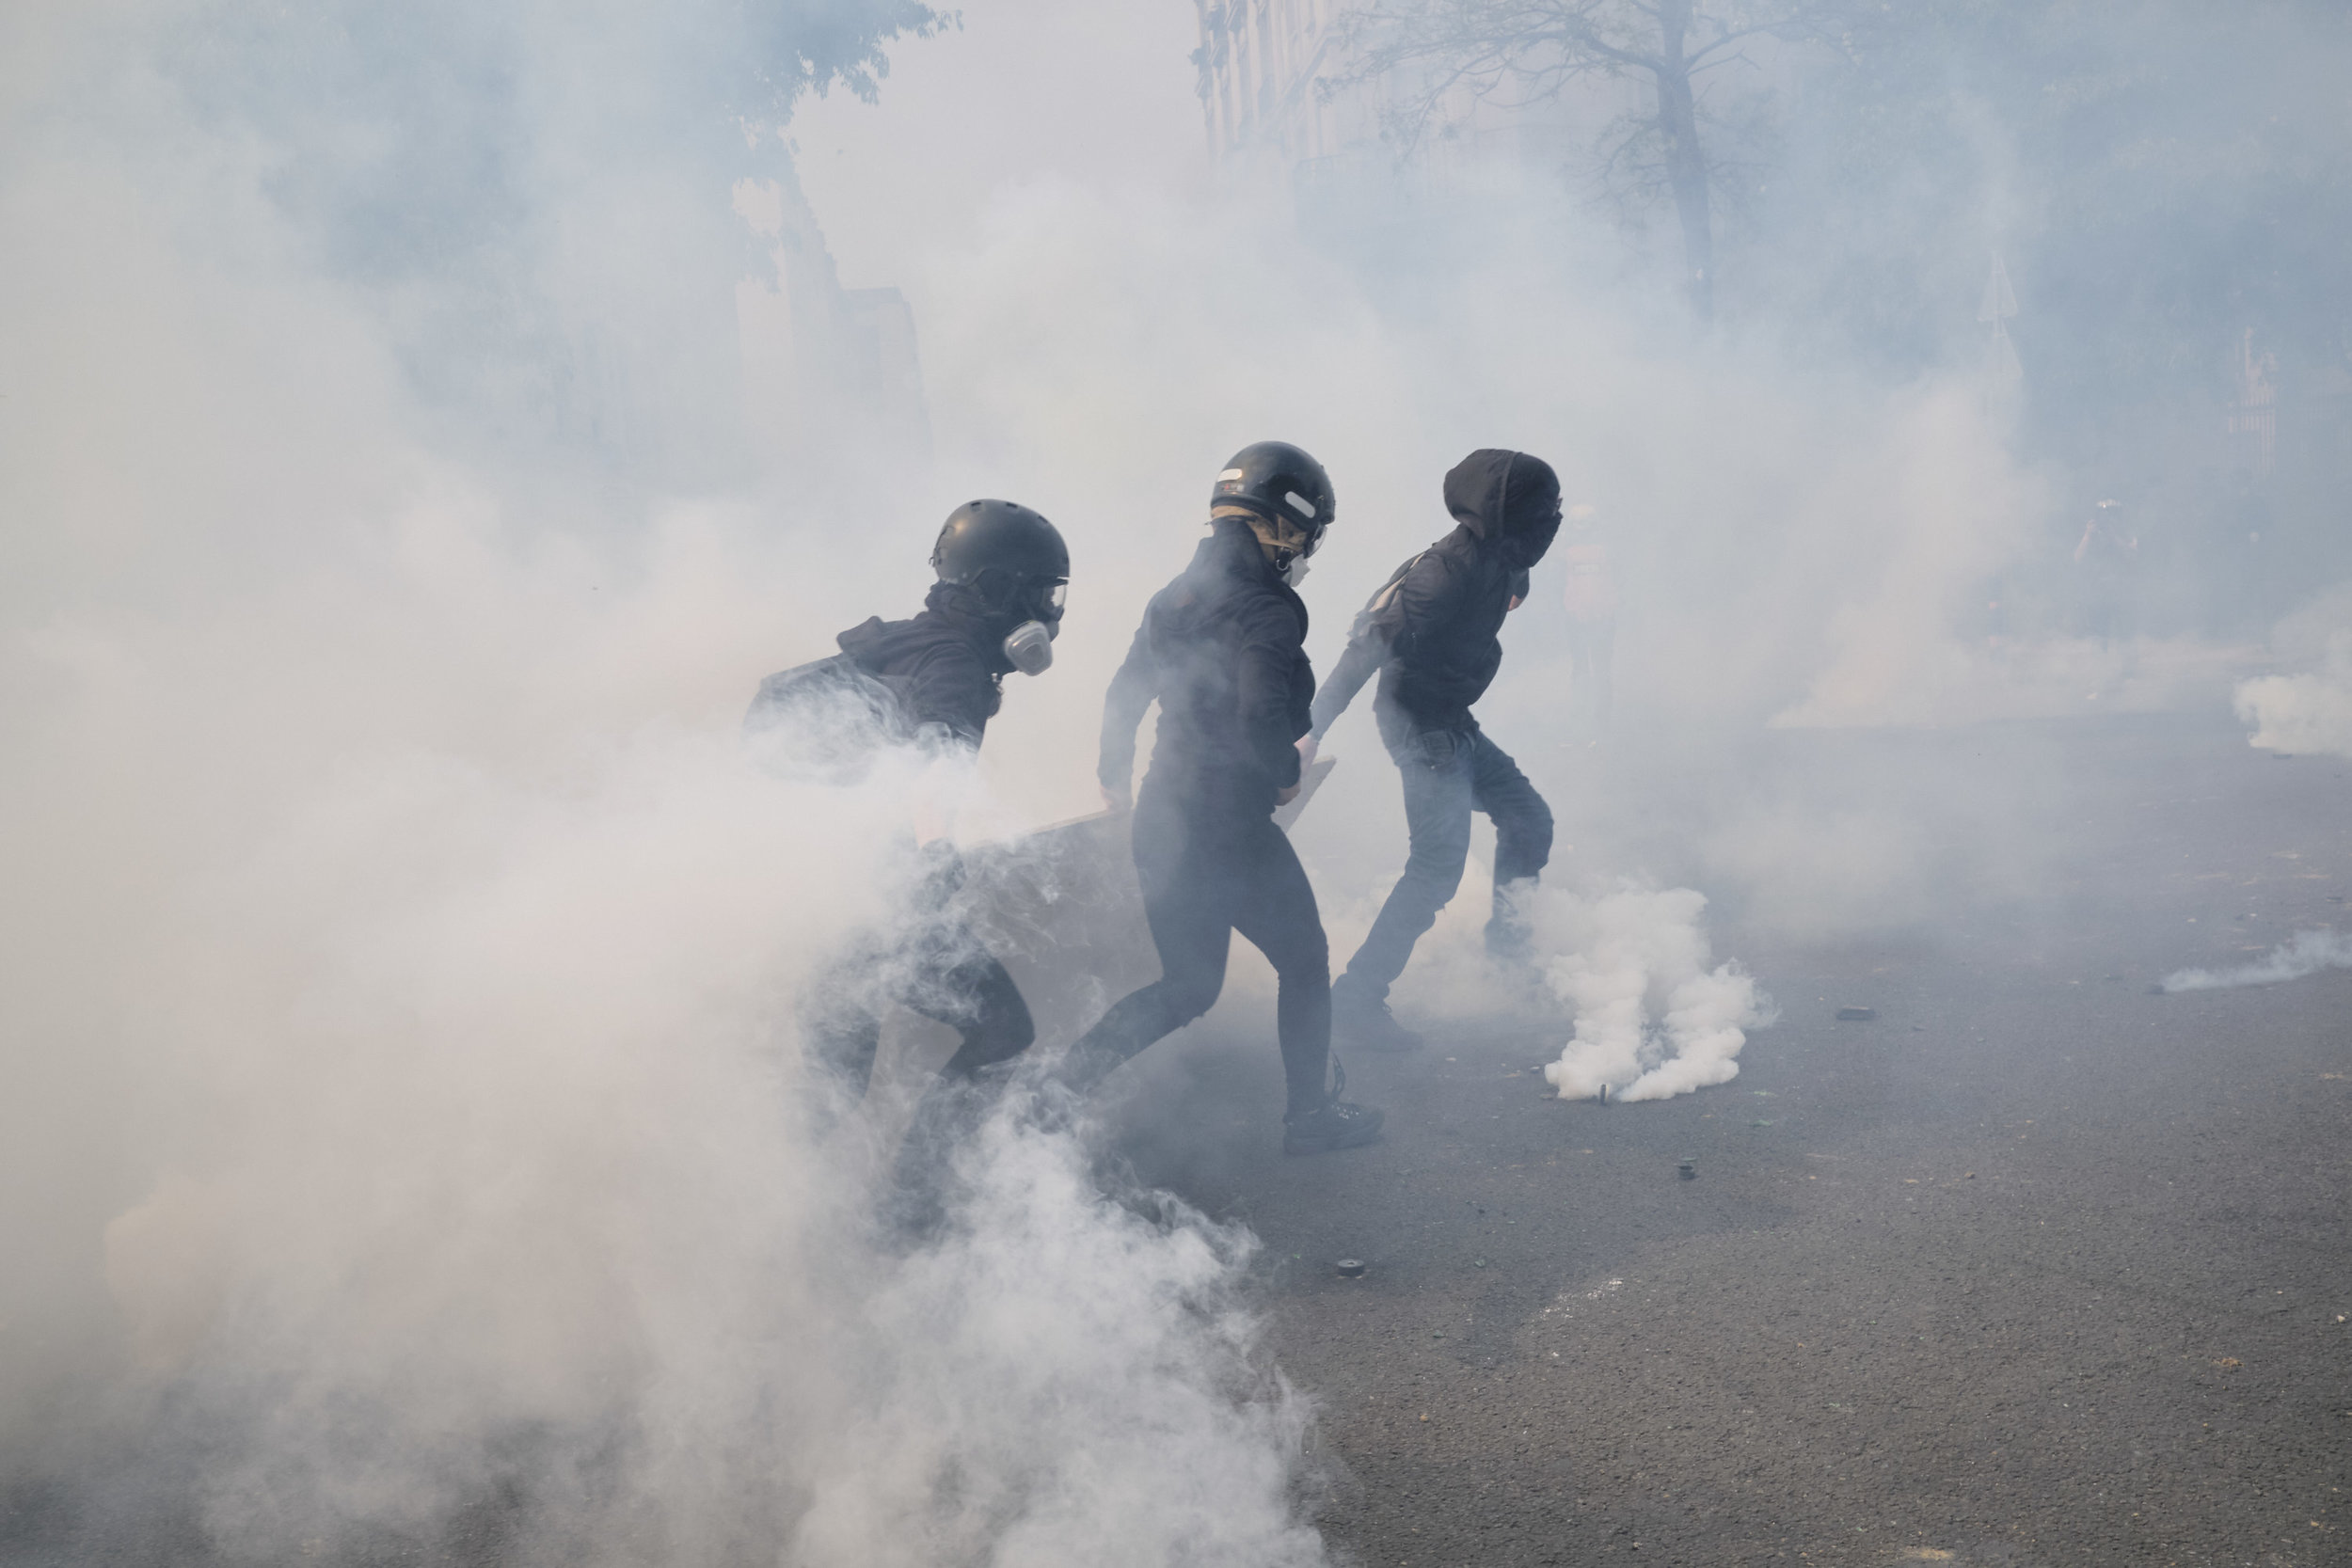 Protest participants trying to get away from the tear gas fired by the police in attempt to control the crowds during the march towards The Palace D'italie.